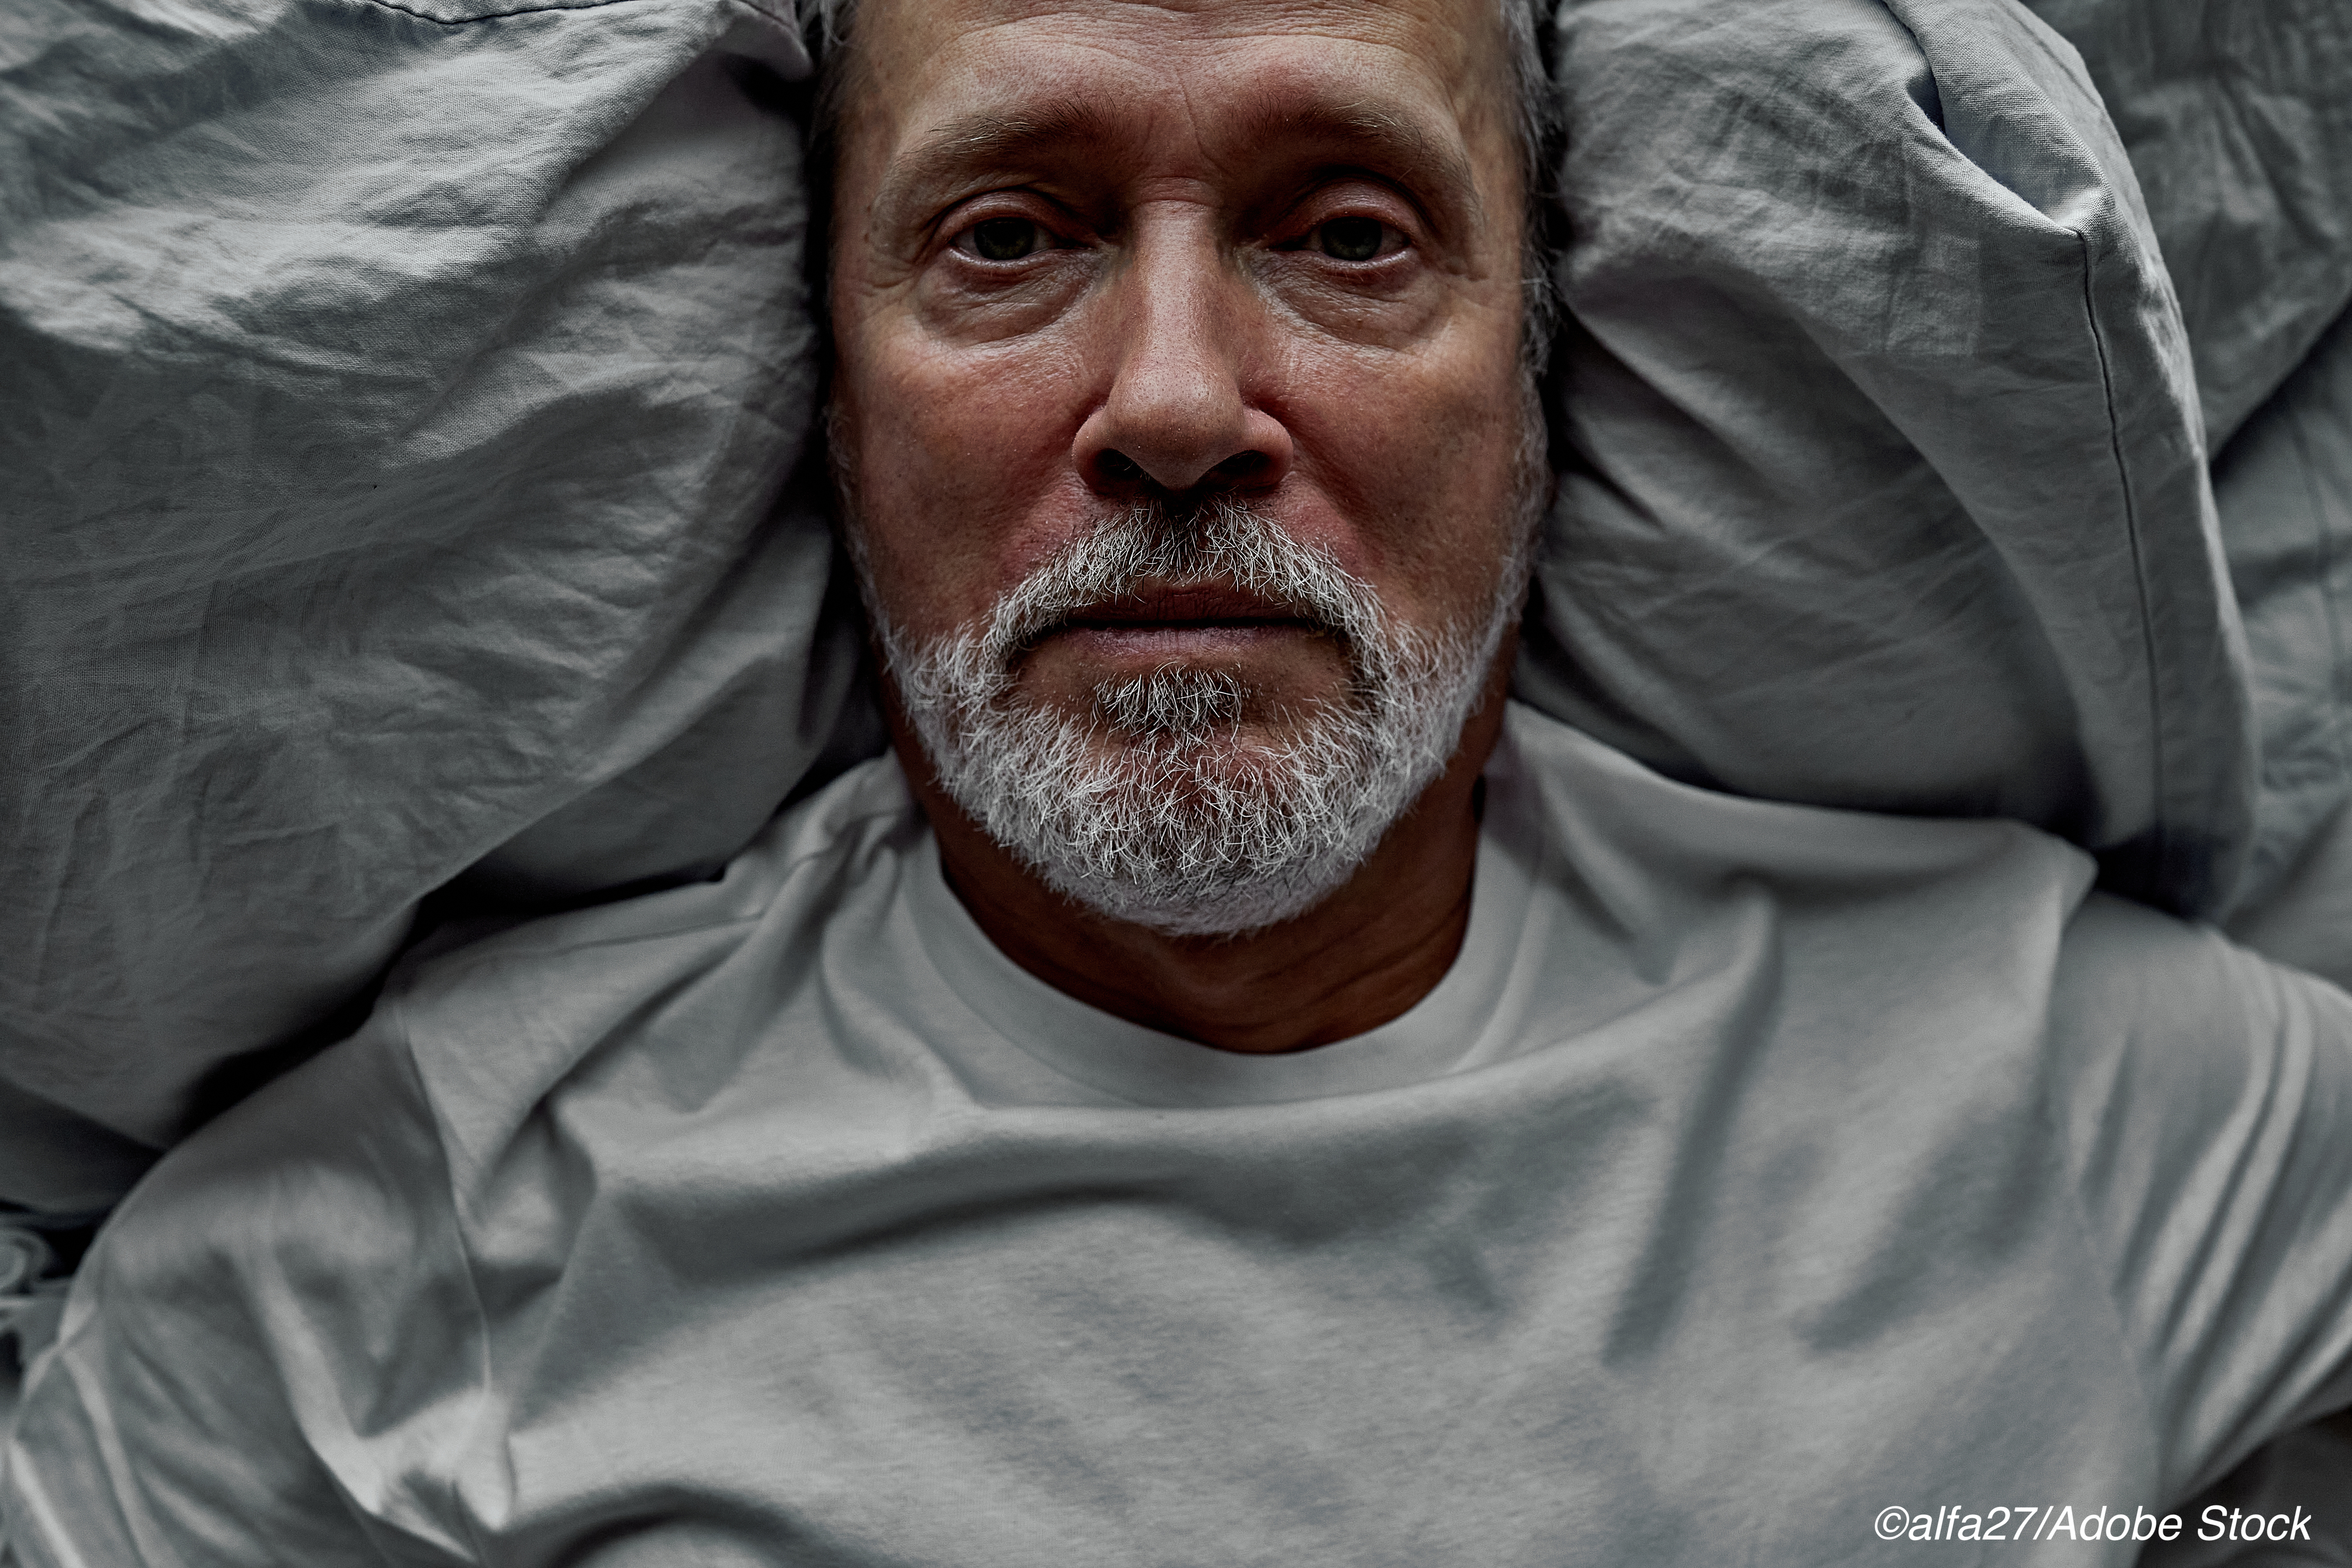 OATS Trial: Can Phone-Based CBT Put Insomnia to Rest in Older OA Patients?